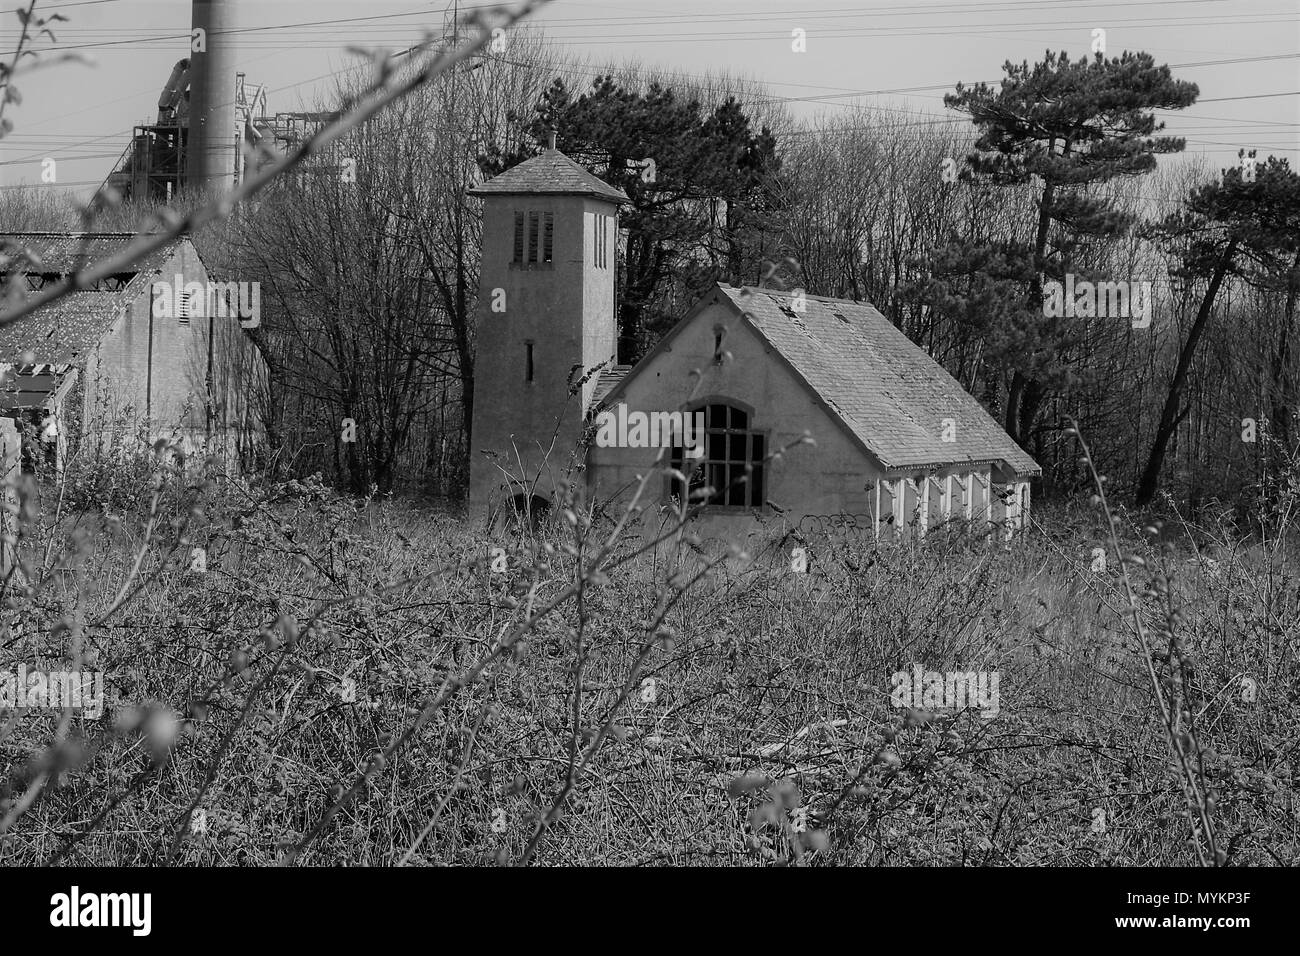 Abandoned church building, in a forgotten village south wales coast - Stock Image